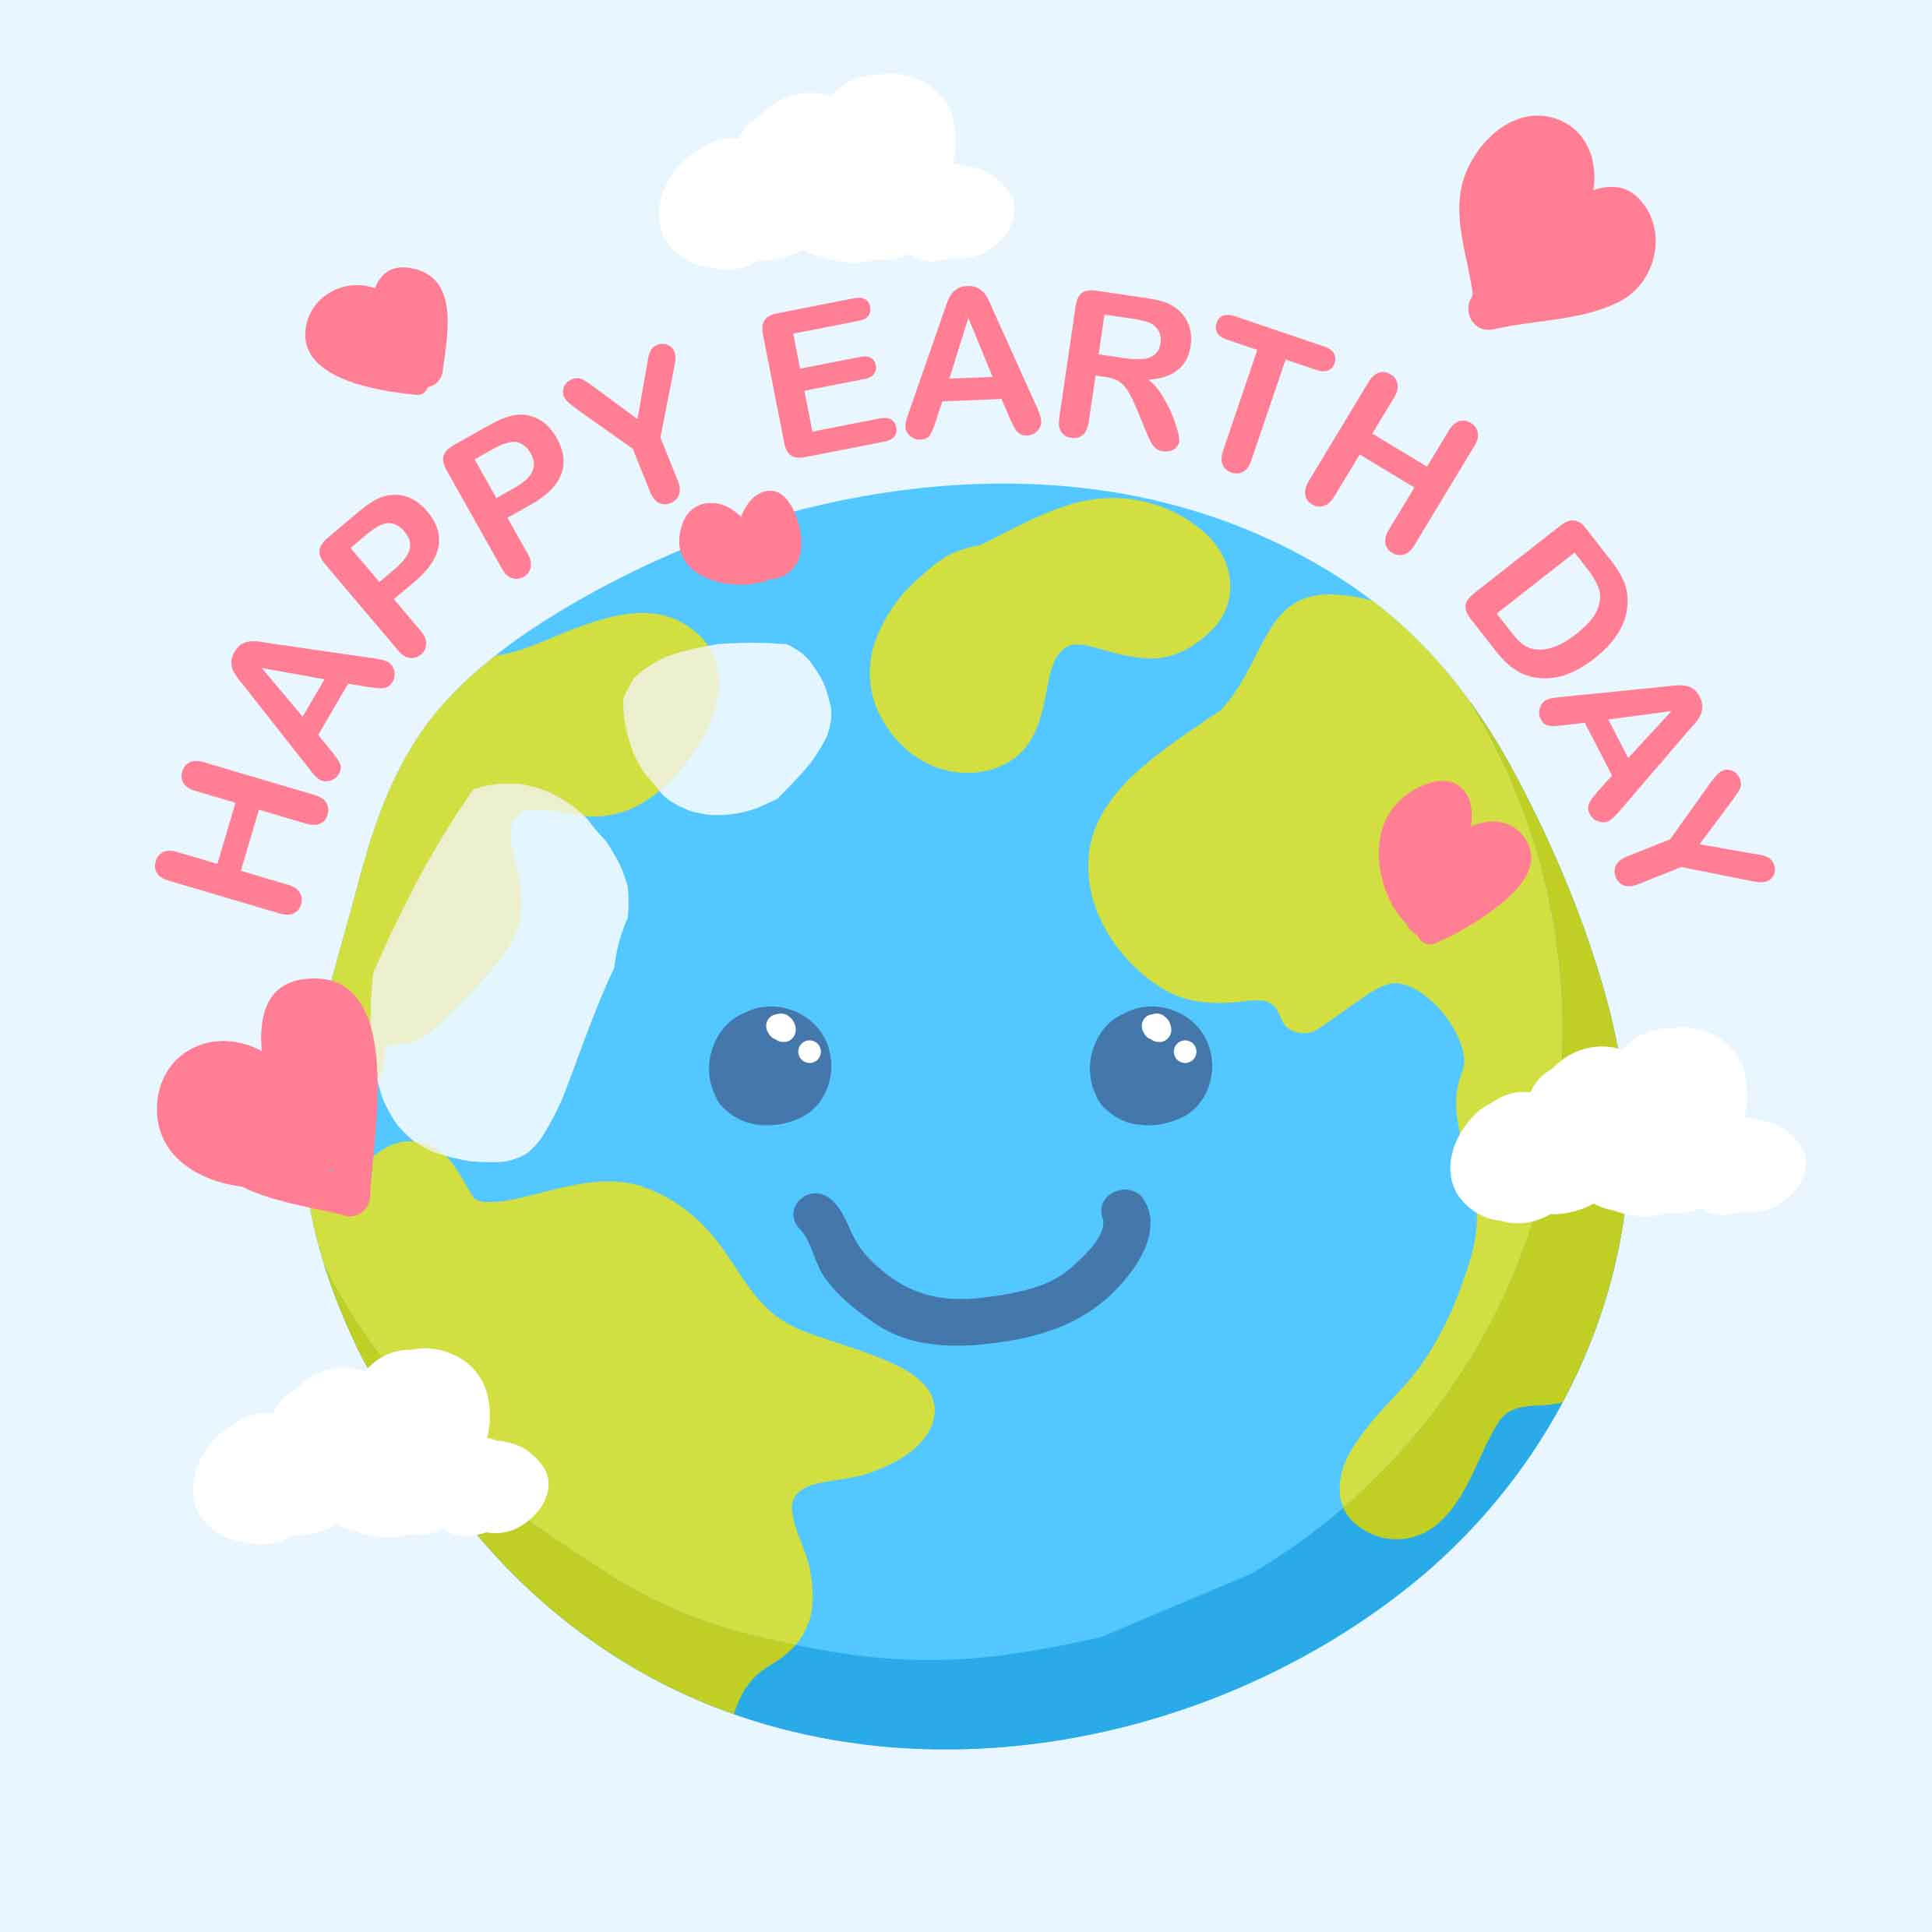 https://static.vecteezy.com/system/resources/previews/000/198/603/original/vector-happy-earth-day-background.jpg